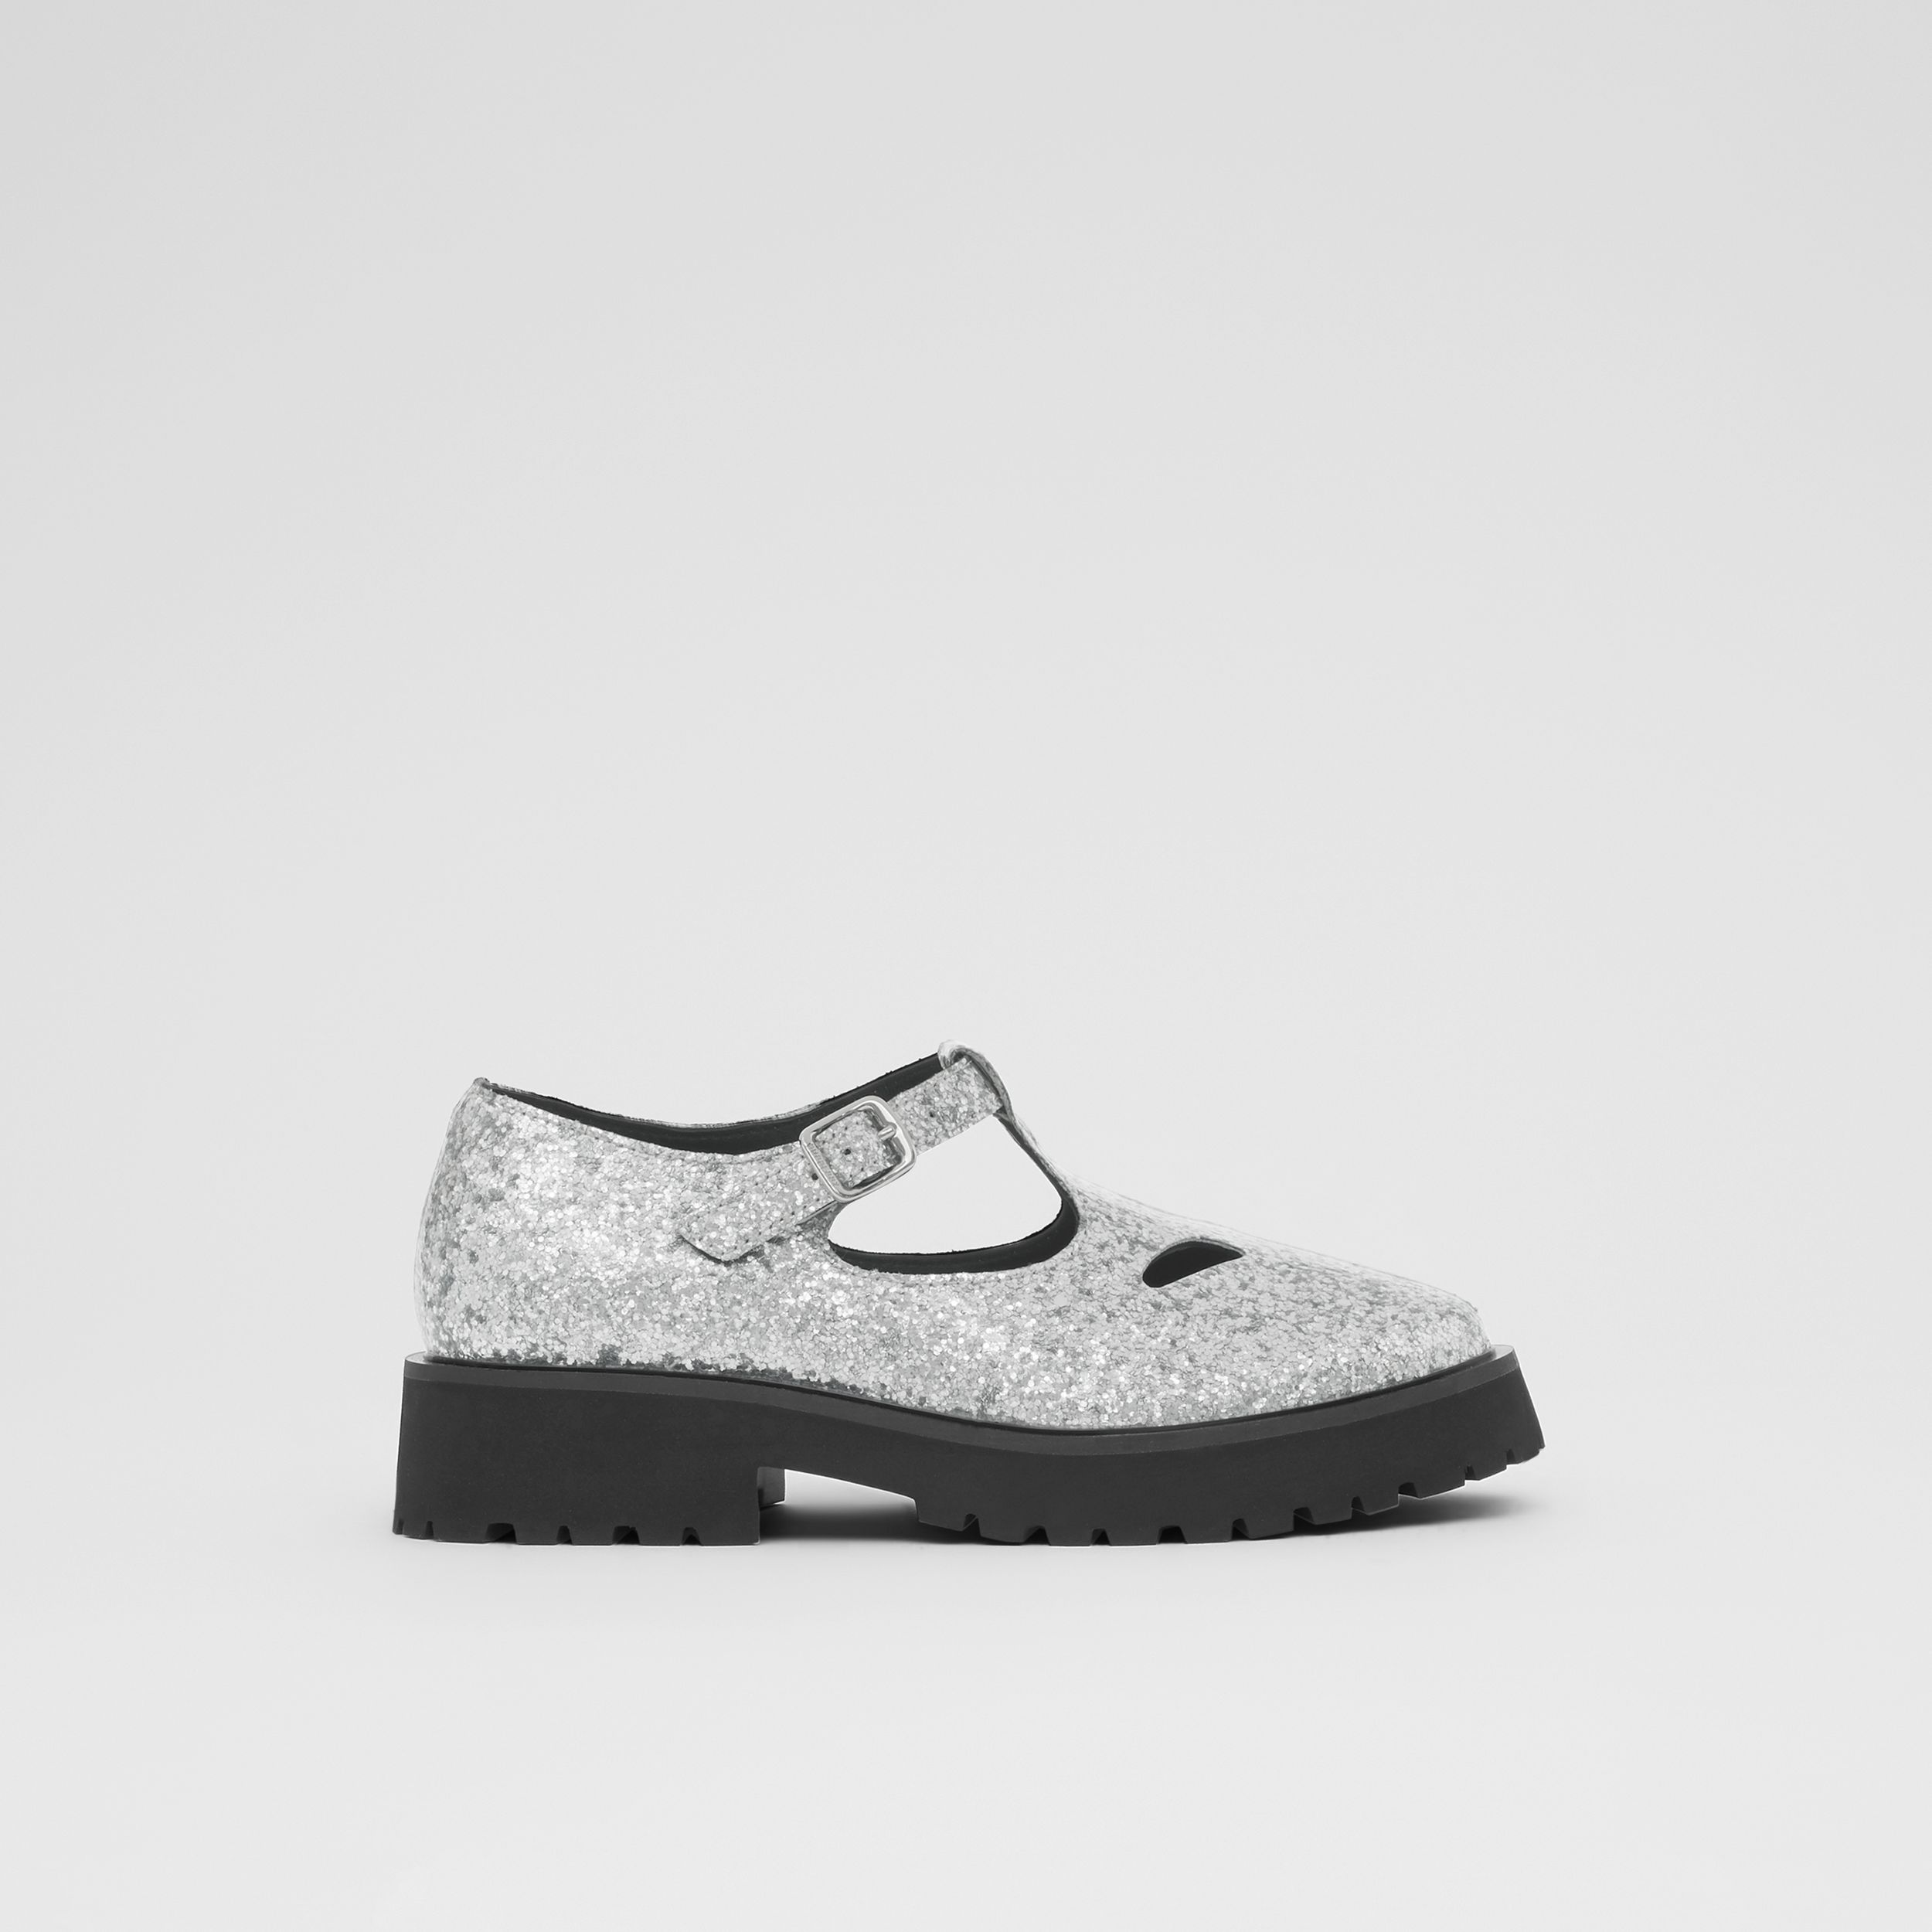 Glittery T-bar Shoes in Silver - Children | Burberry - 4